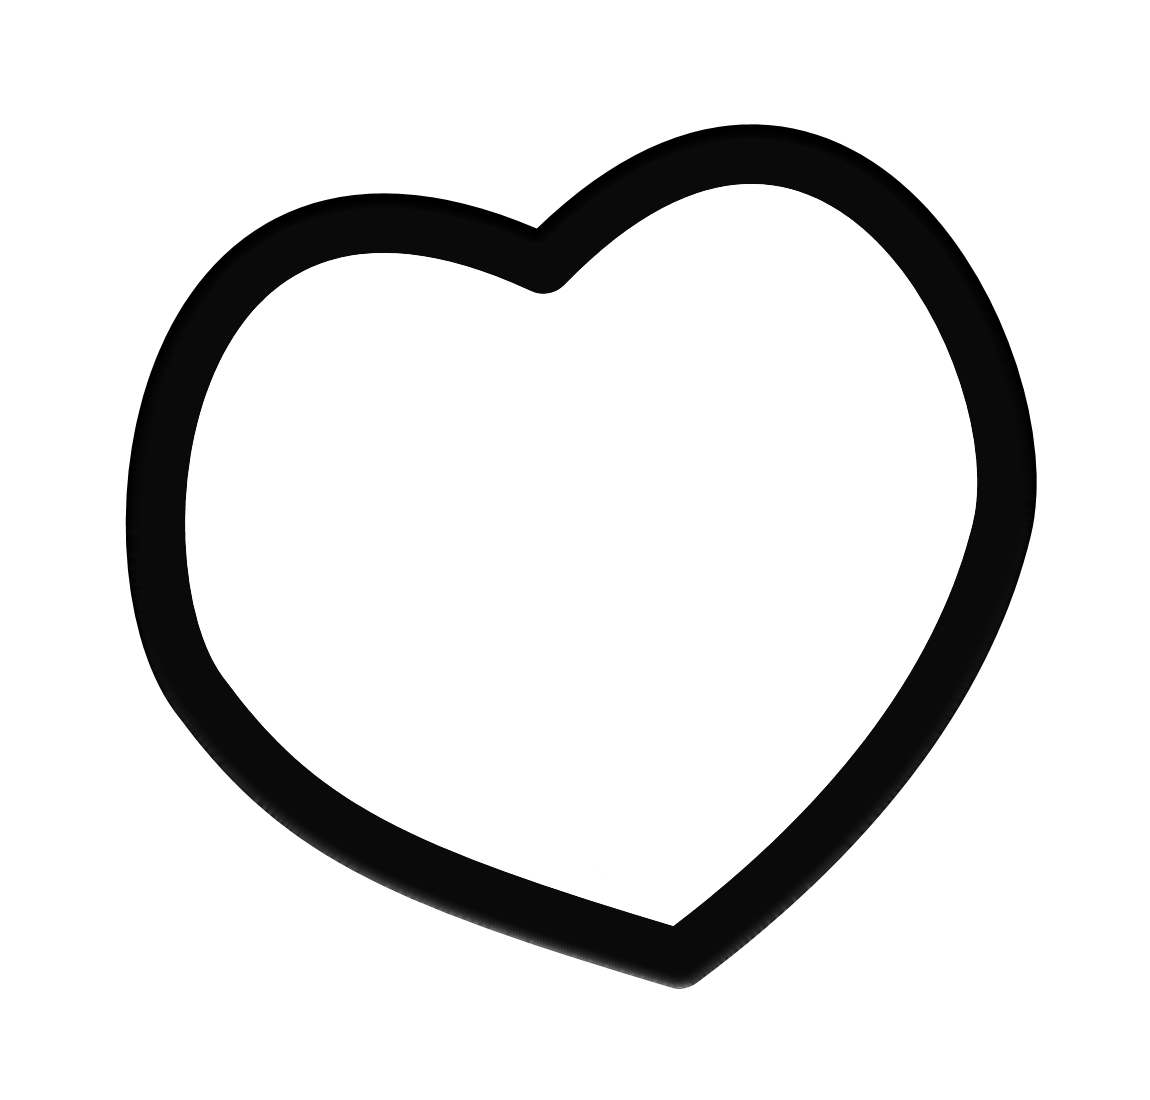 Heart Frame Clip Art Black And White | Clipart Panda - Free Clipart ...